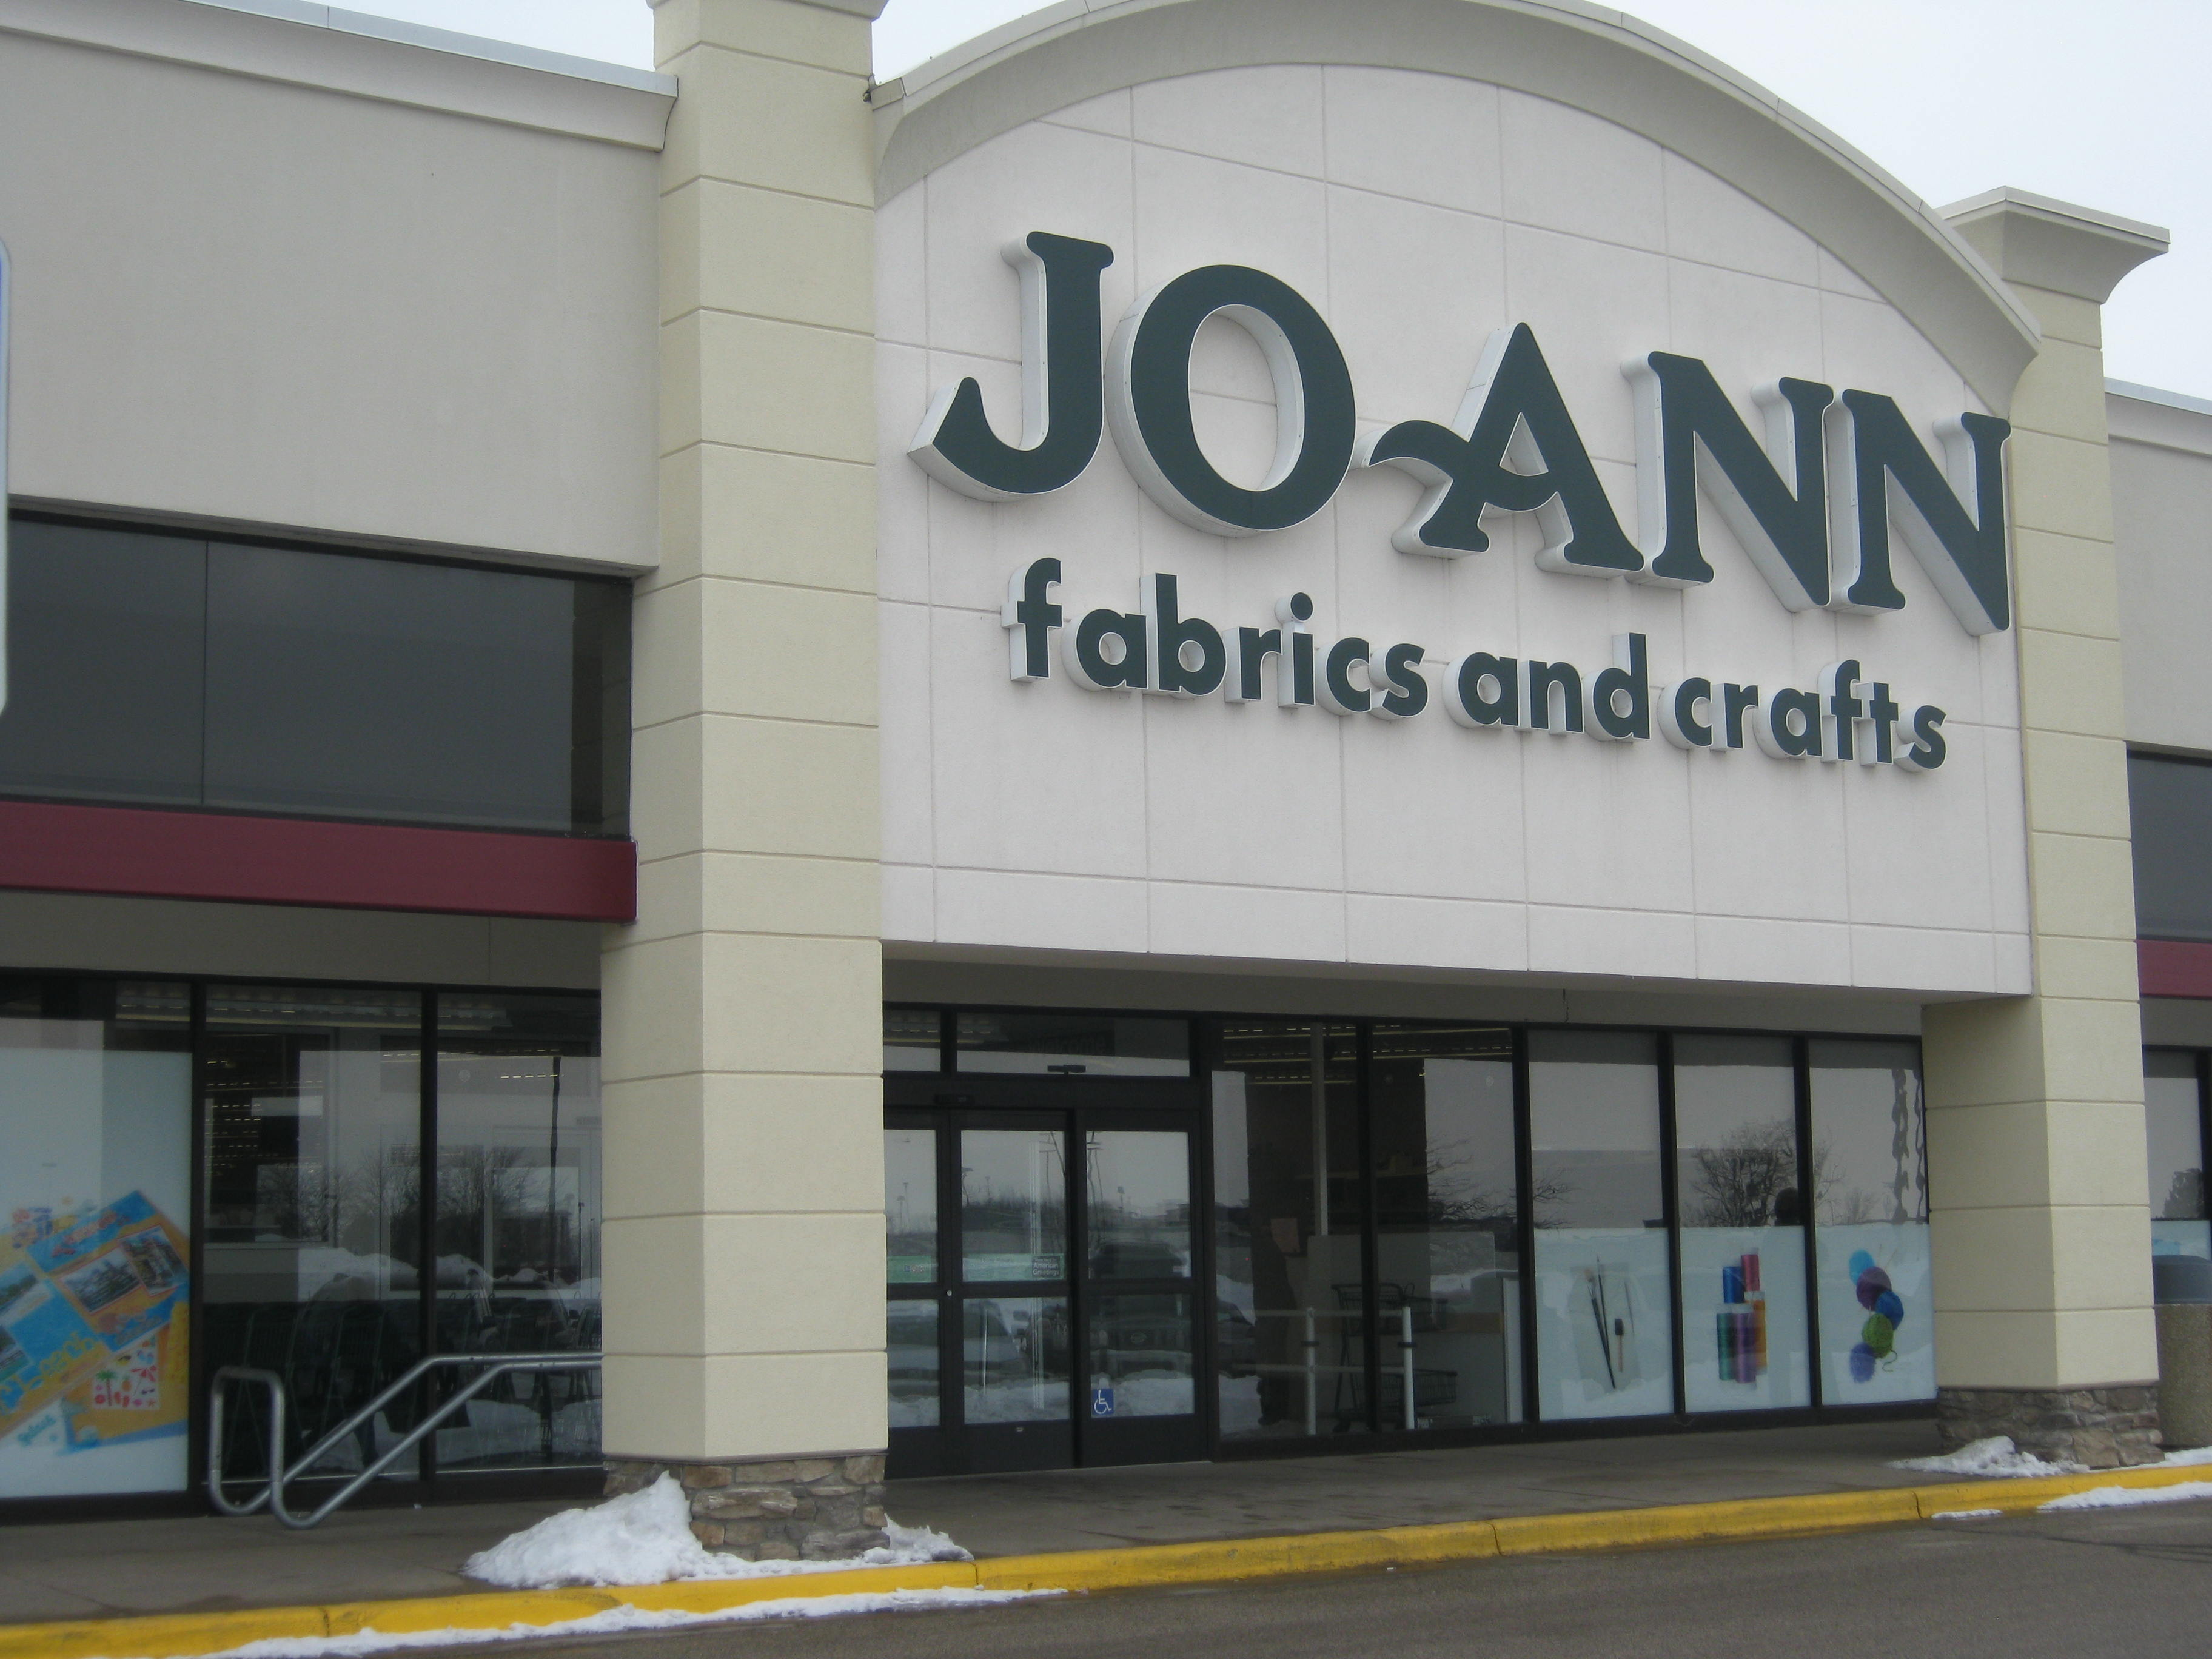 Jo-Ann Fabric and Craft at S Queen St, York, PA store location, business hours, driving direction, map, phone number and other services.